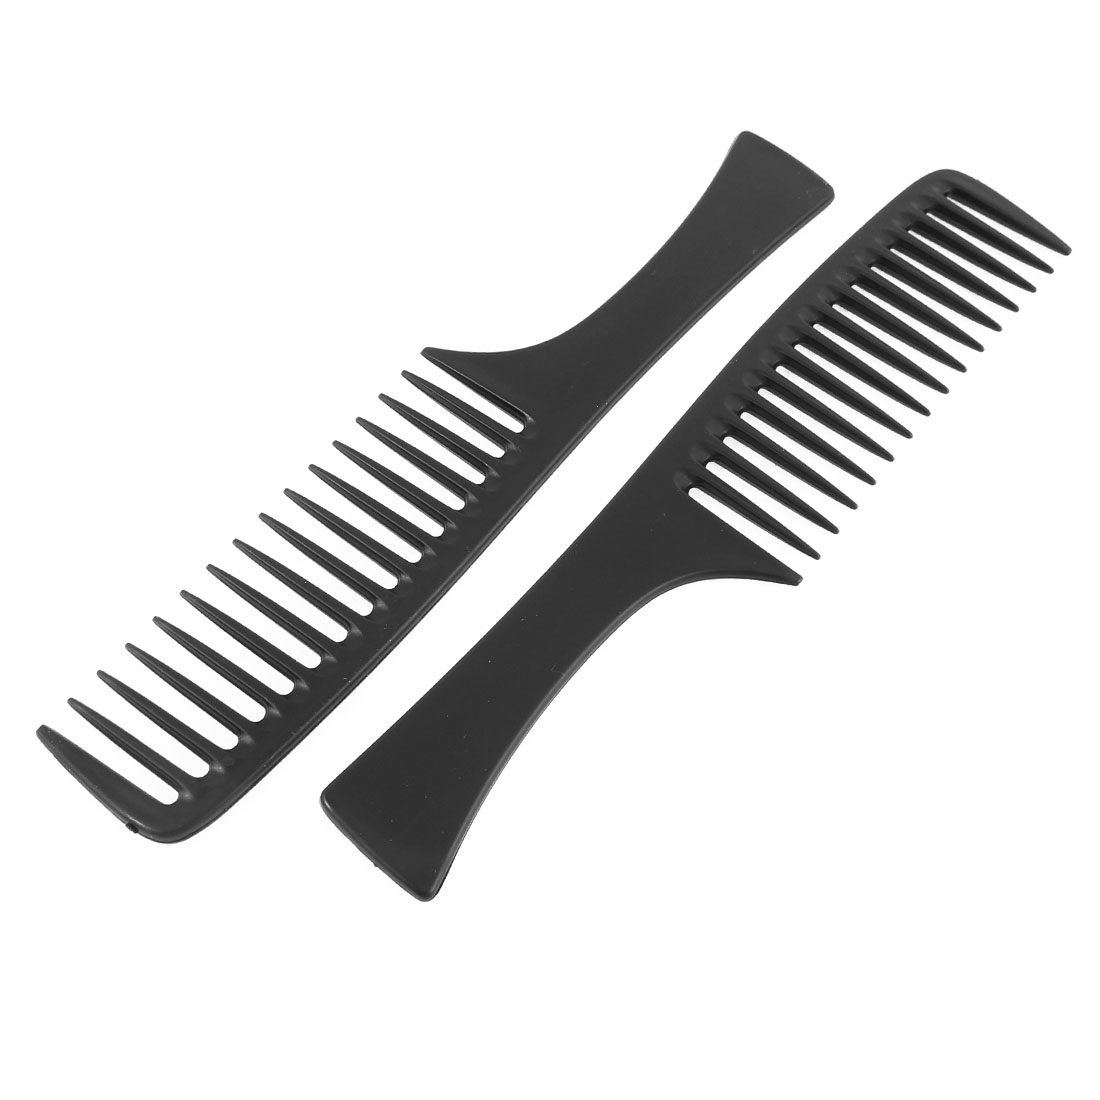 Plastic Wide Tooth Hairstyle DIY Hair Care Handgrip Comb Black 2Pcs